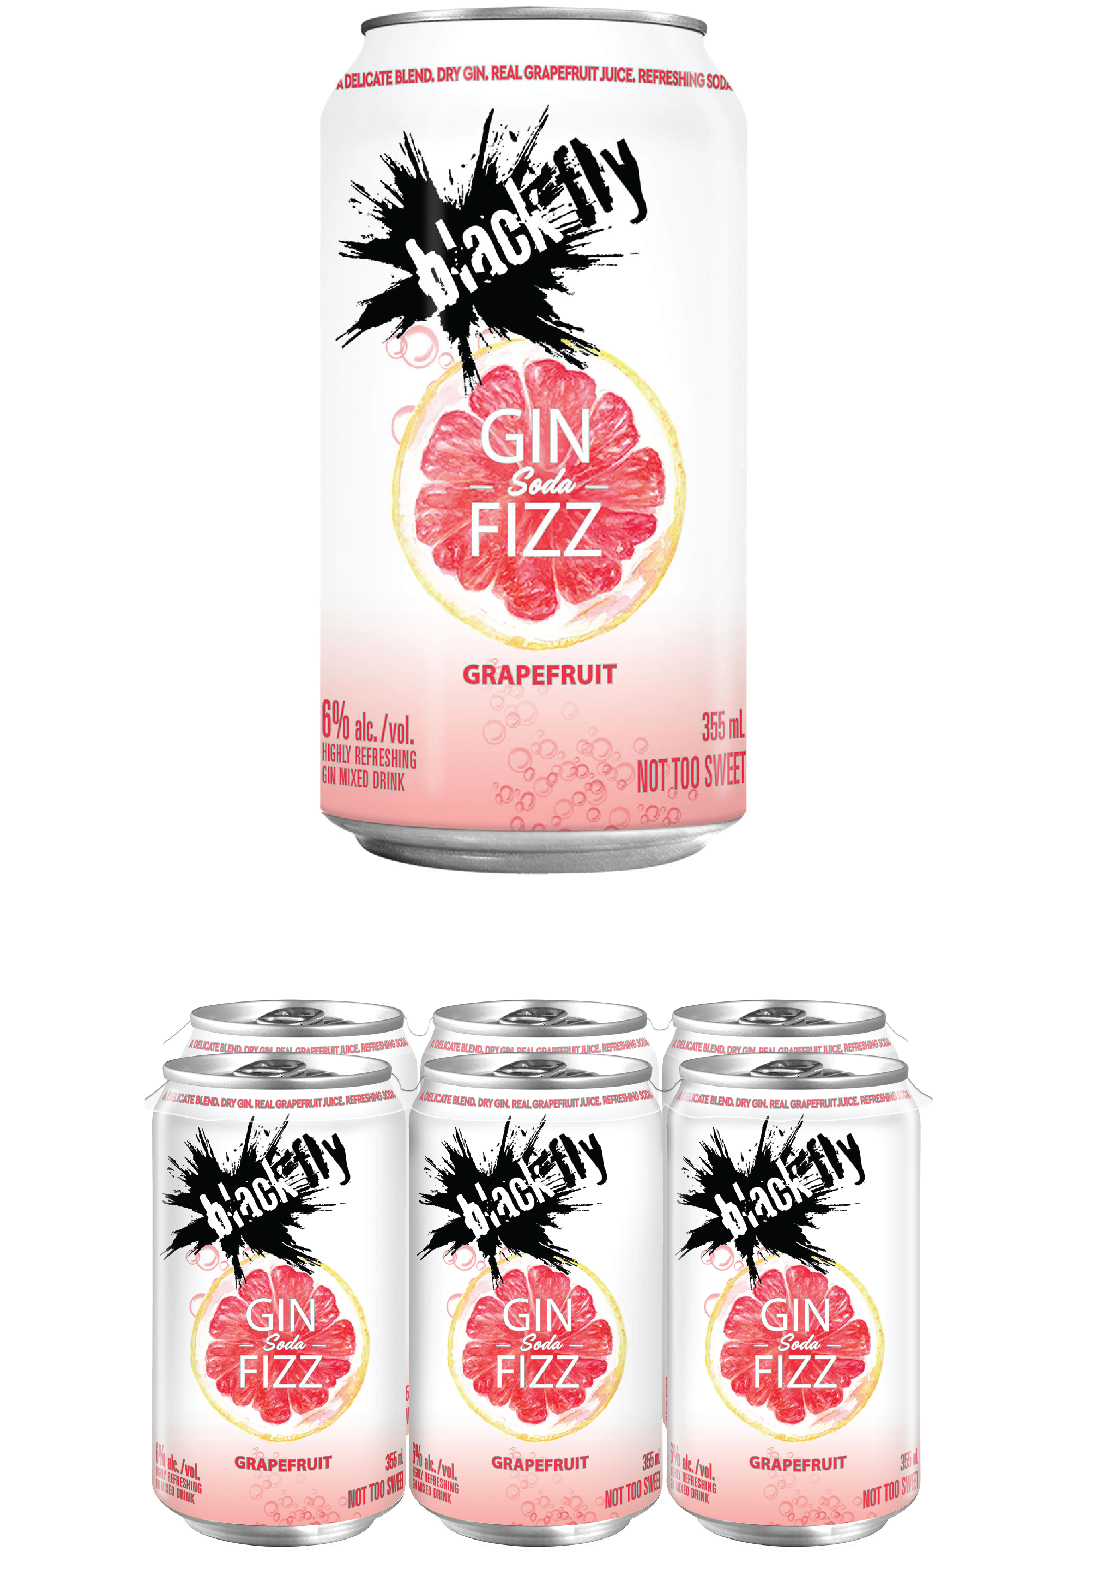 Black Fly - <span style='color:#ffe500;'>Gin Soda Fizz</span> Grapefruit